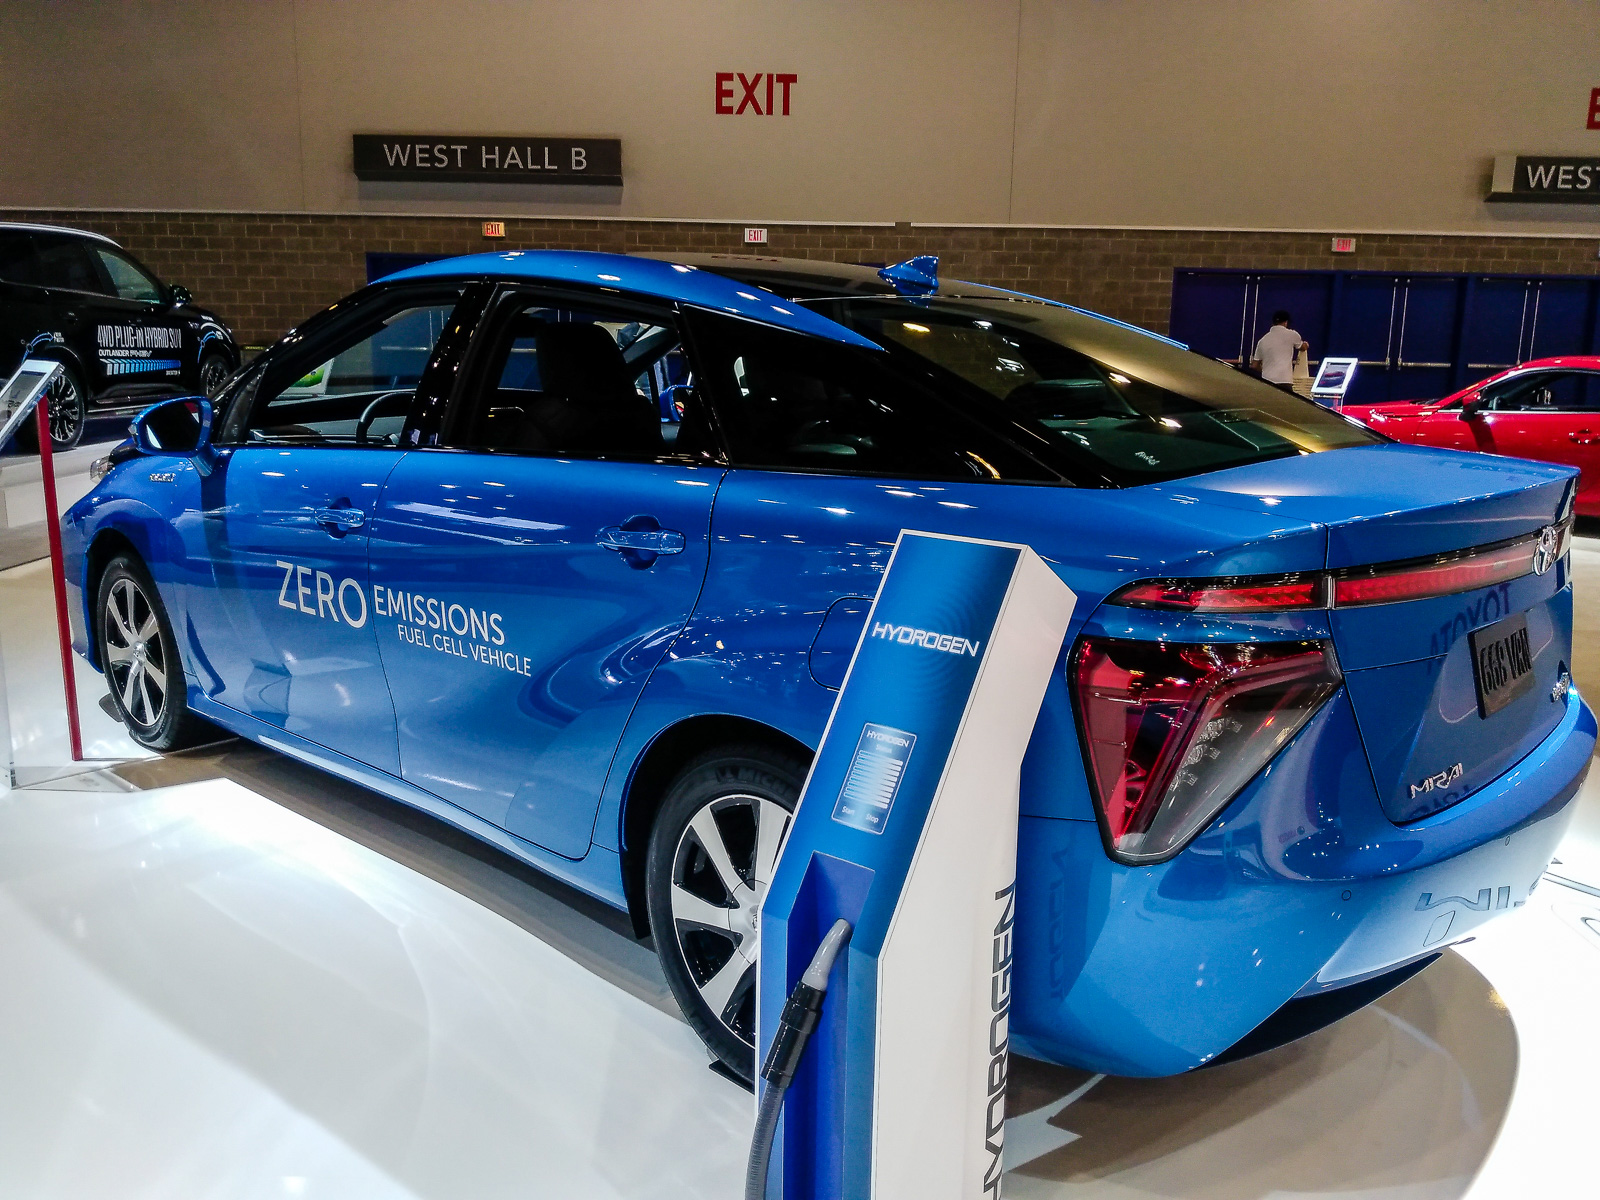 2018 toyota mirai. it takes five minutes to refuel and will have range of 483 kilometres 300 miles on a full tank 2018 toyota mirai n